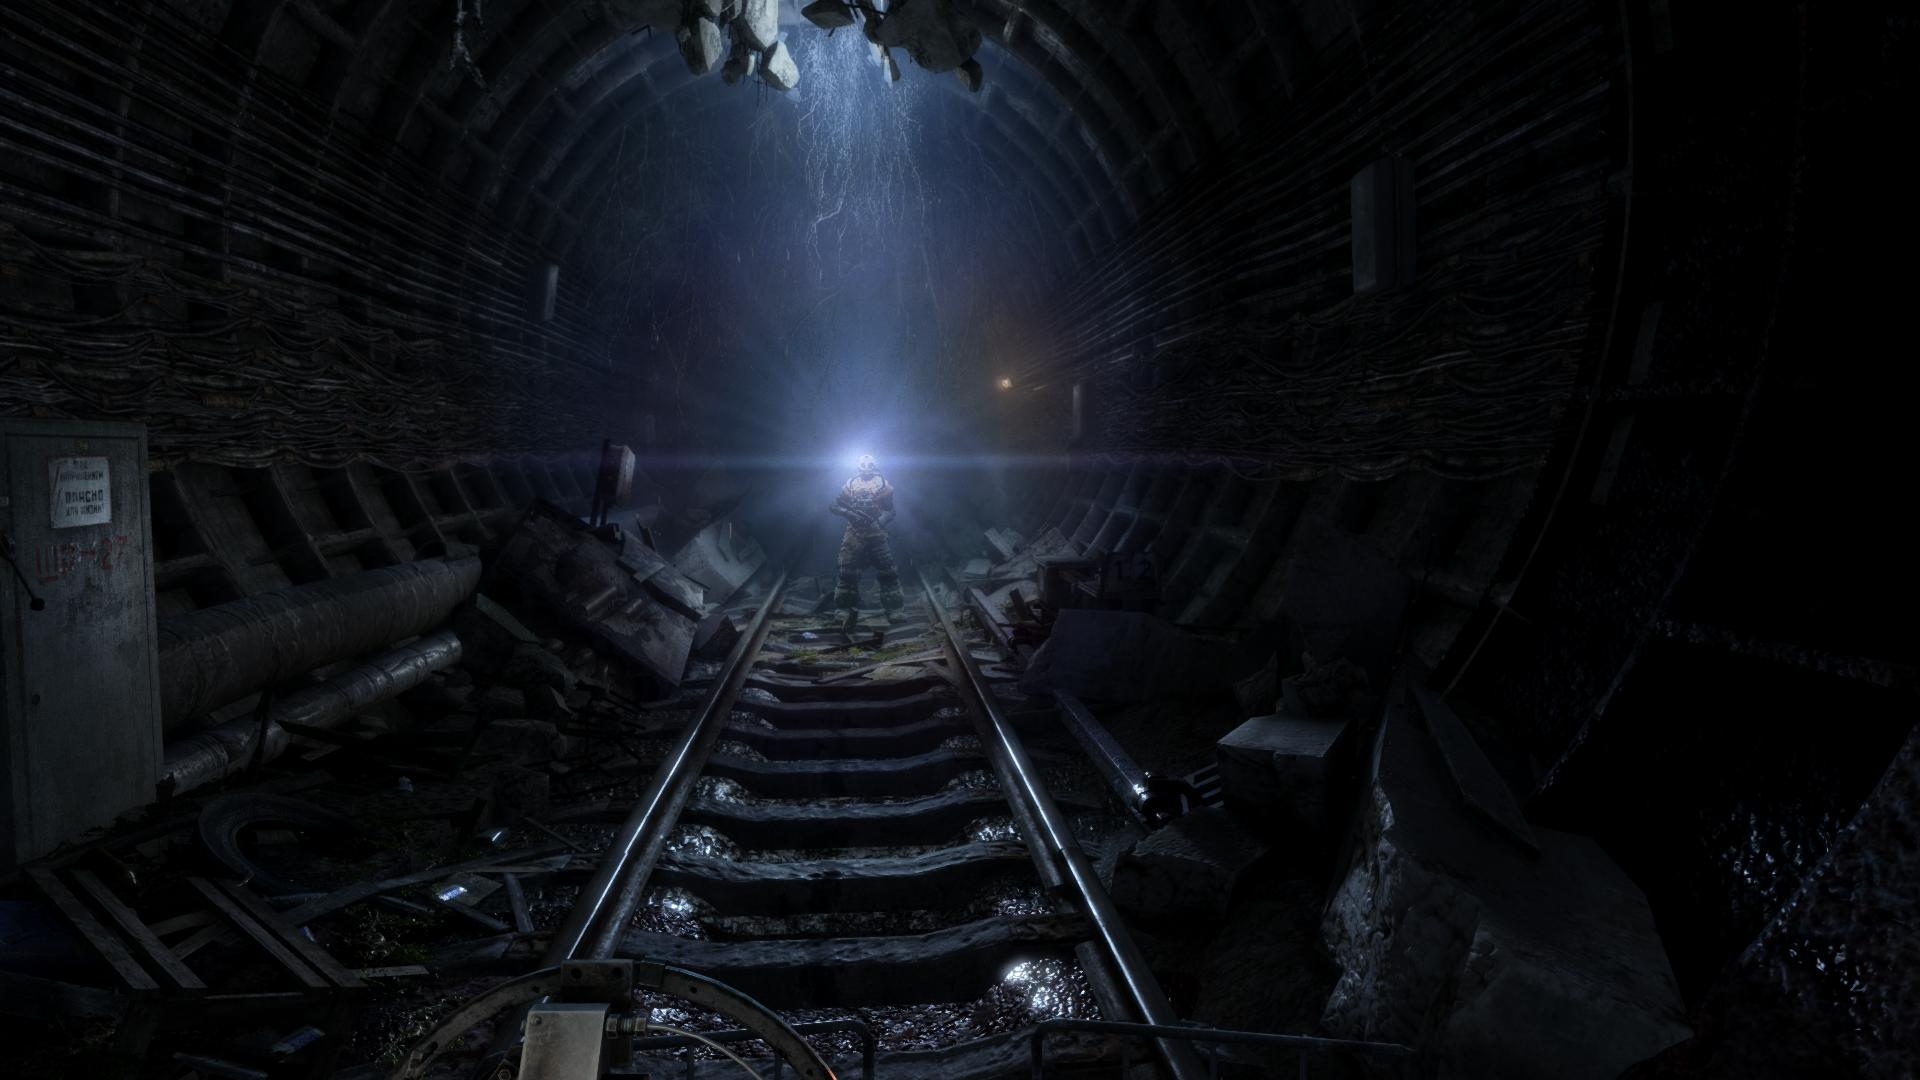 Gaming Wallpapers Hd Wallpapers Fond D Ecran Pour Metro Last Light Pc Ps3